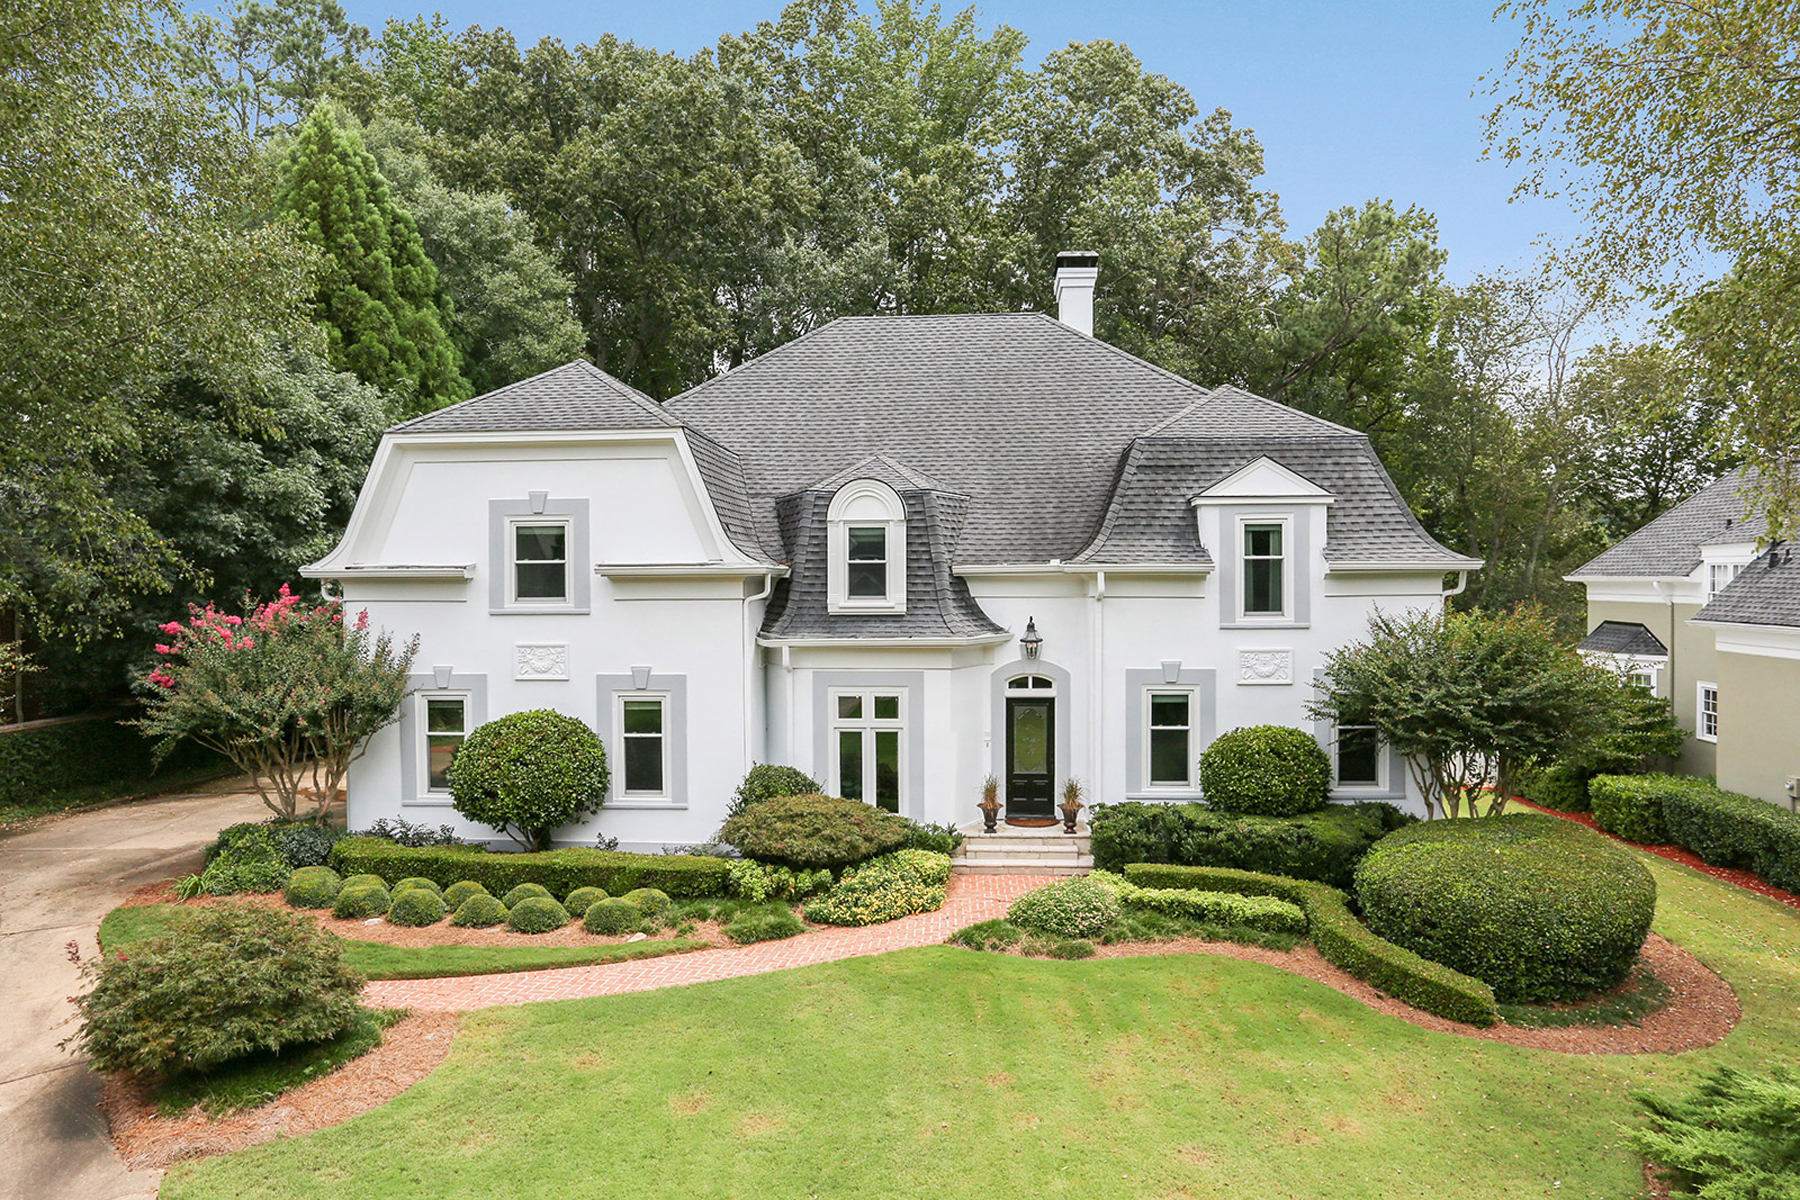 Maison unifamiliale pour l Vente à A Sophisticated Sandy Springs Masterpiece 580 Avignon Court, Sandy Springs, Georgia, 30350 États-Unis